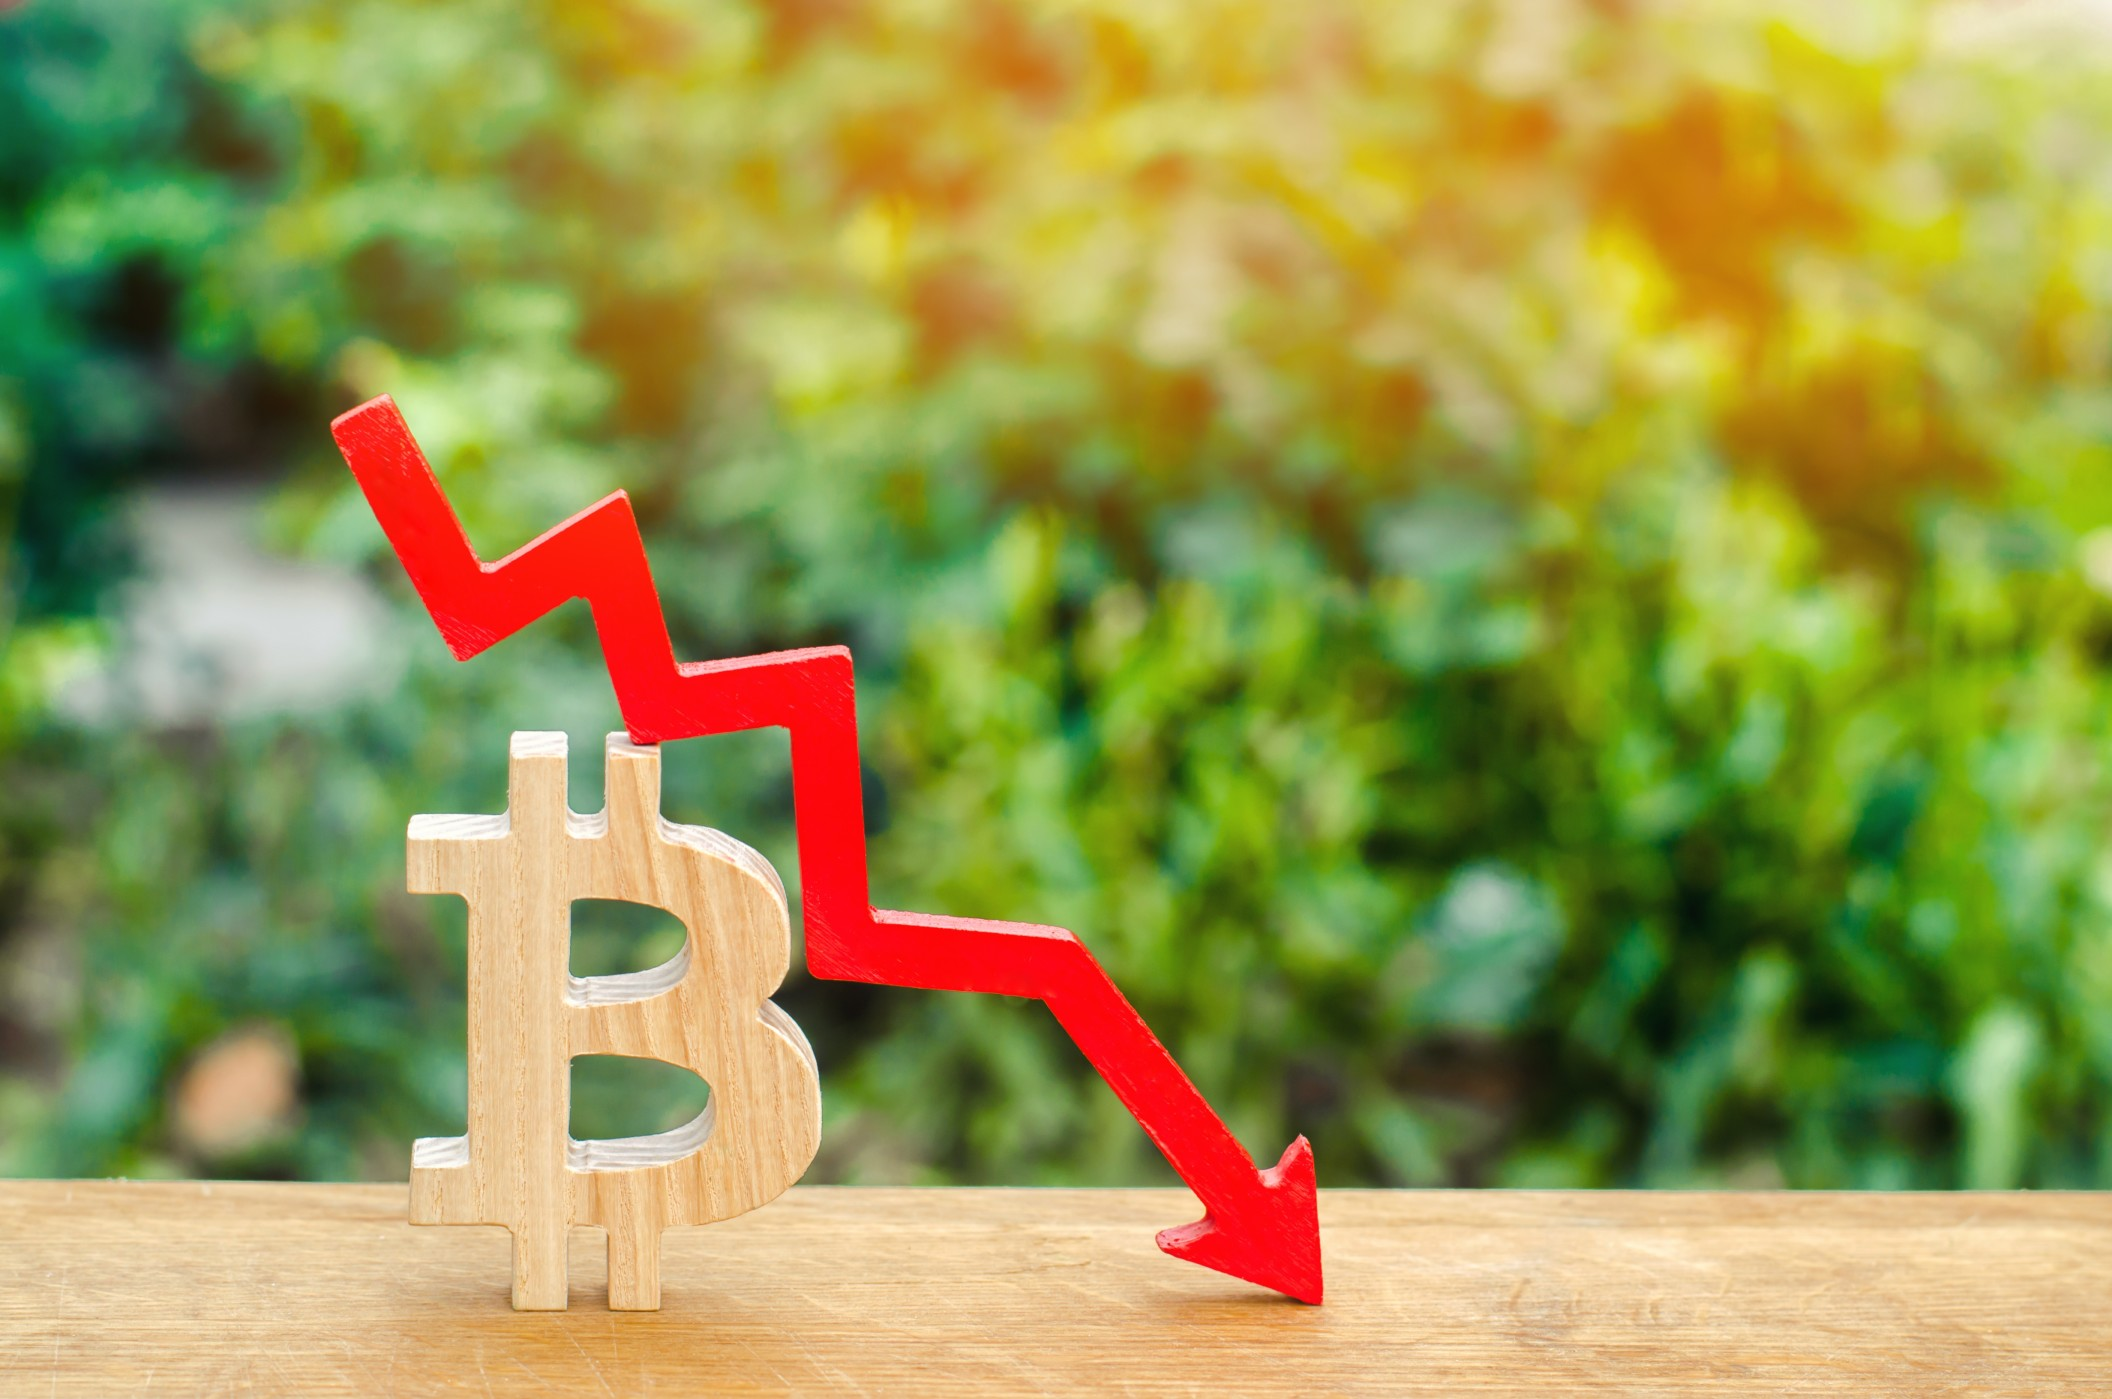 fall-in-the-cost-of-bitcoin-the-collapse-of-the-crypto-currency-market-blockchain-technology-wooden_t20_Xzd4Eb.jpg